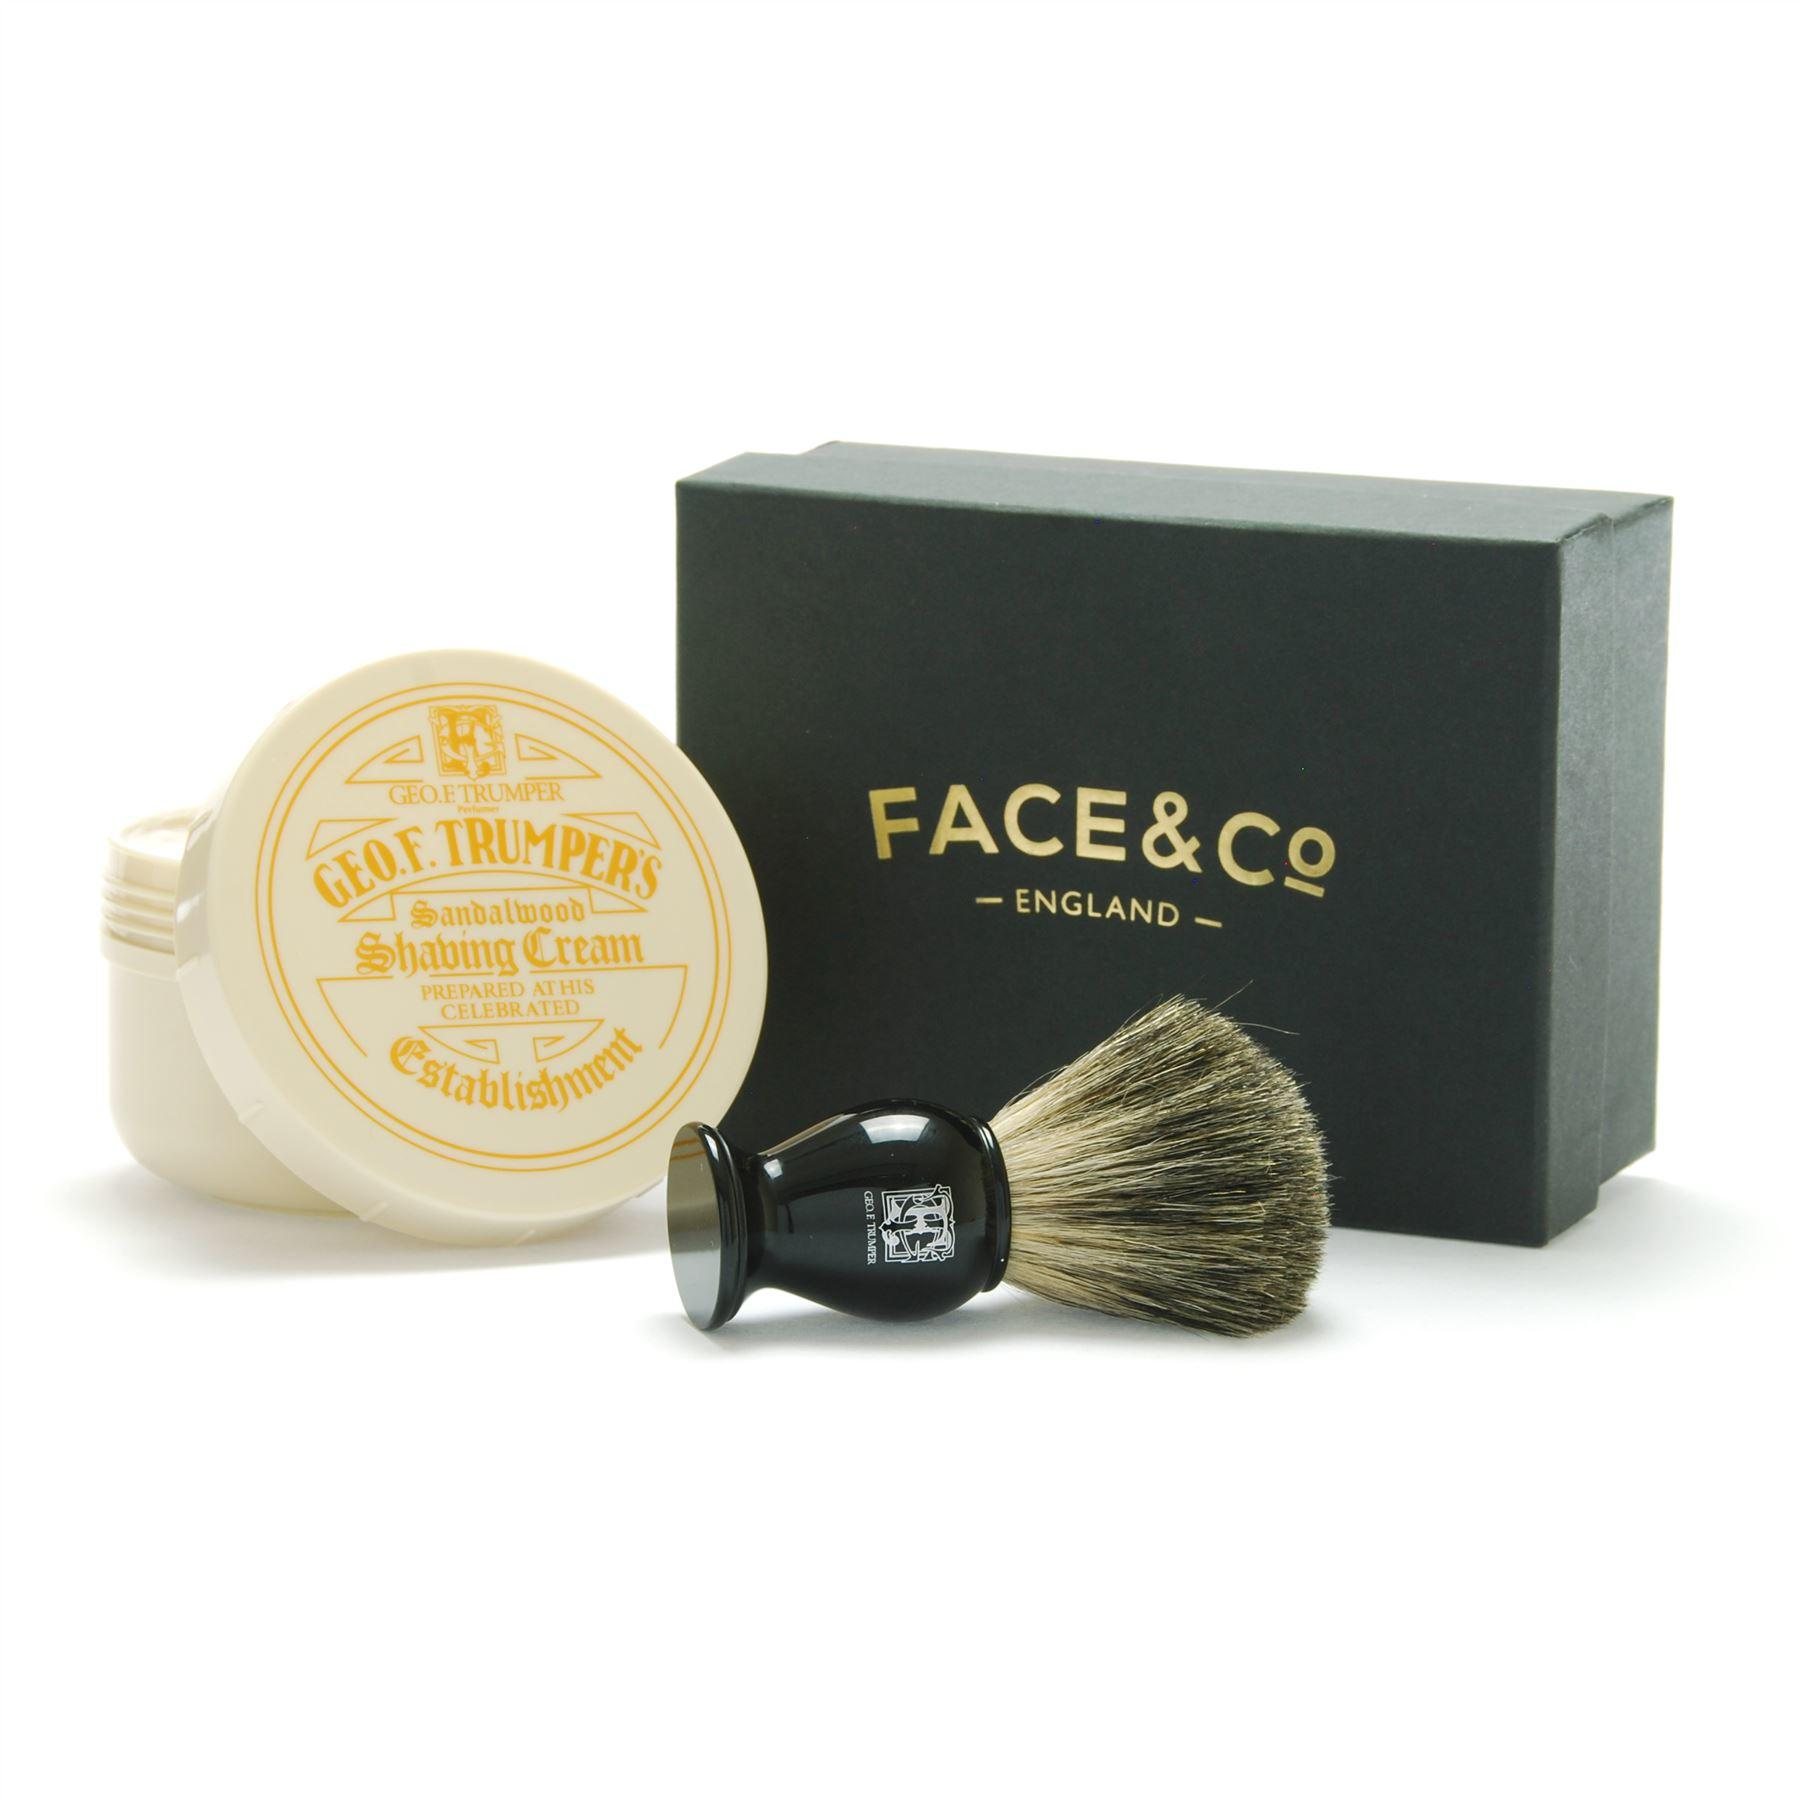 Geo F Trumper Black, Pure Badger Shaving Brush & Sandalwood Shave Cream Gift Set